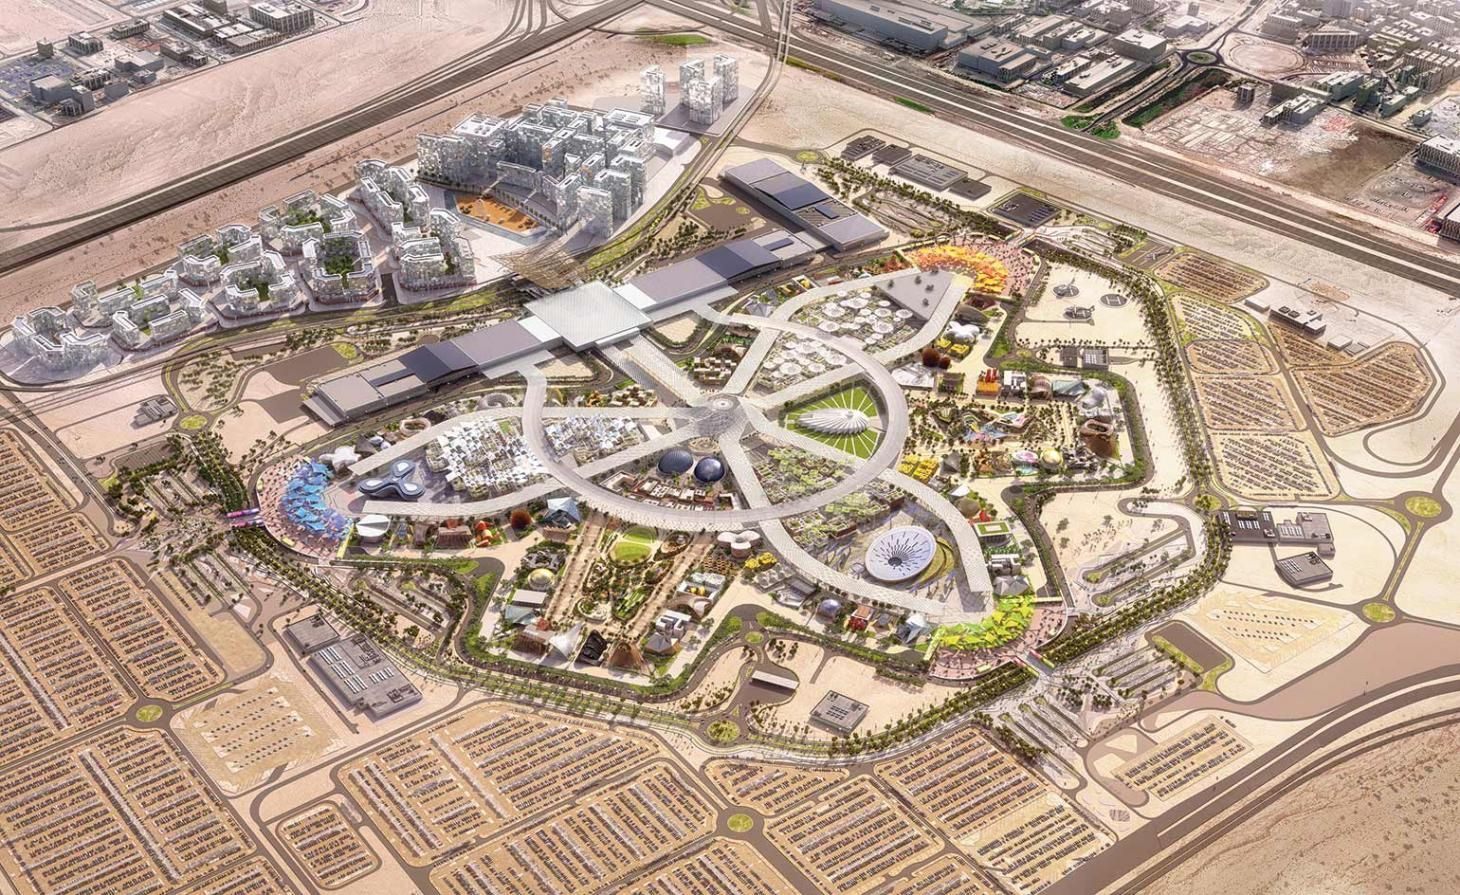 Who Will Design The Dubai Expo 2020 Uk Pavilion Design Competition Has Been Launched To Find The D Pavilion Design Pavilion Architecture Design Competitions